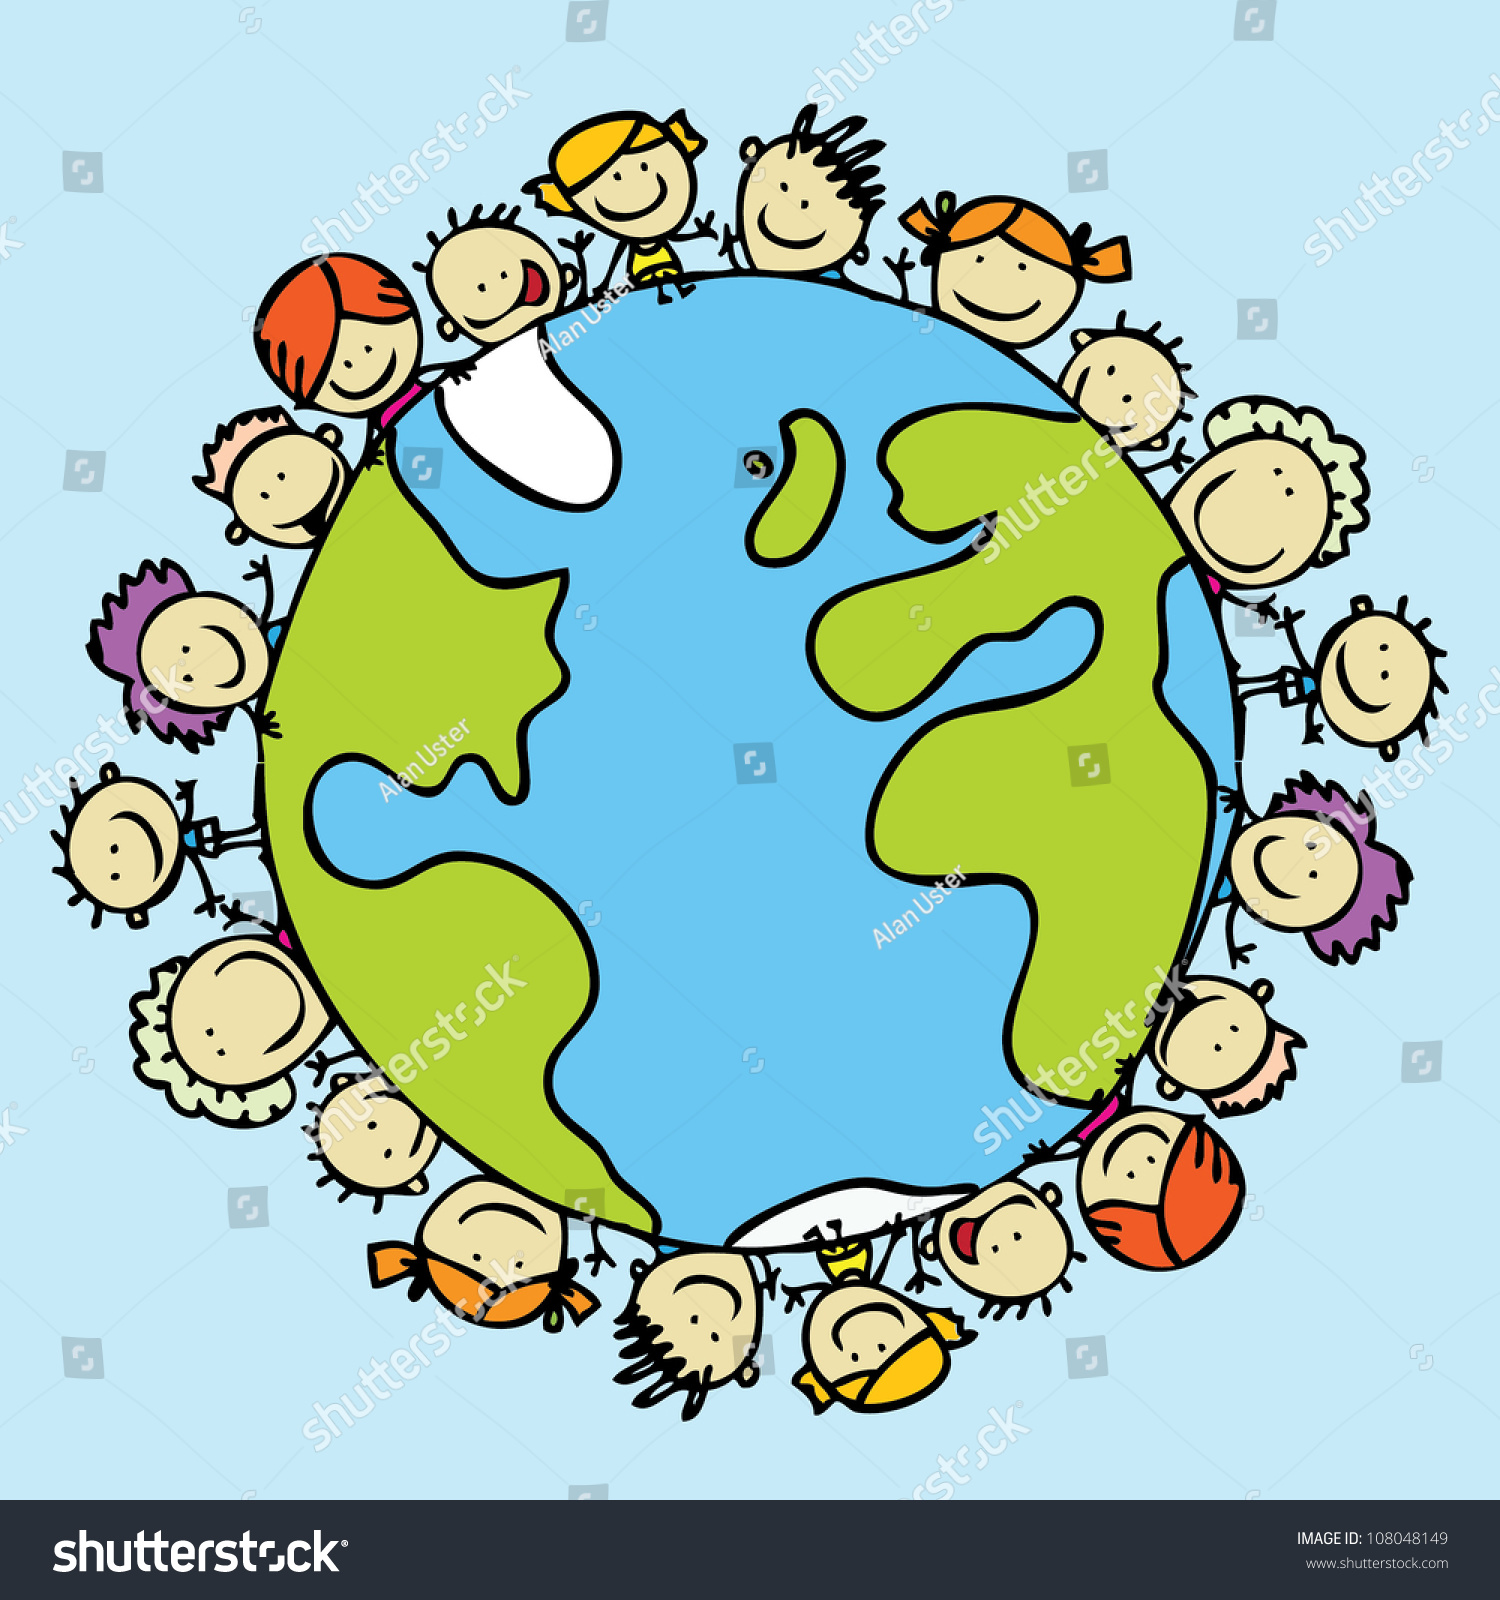 Kids Around World Together Save Planet Stock Vector ...